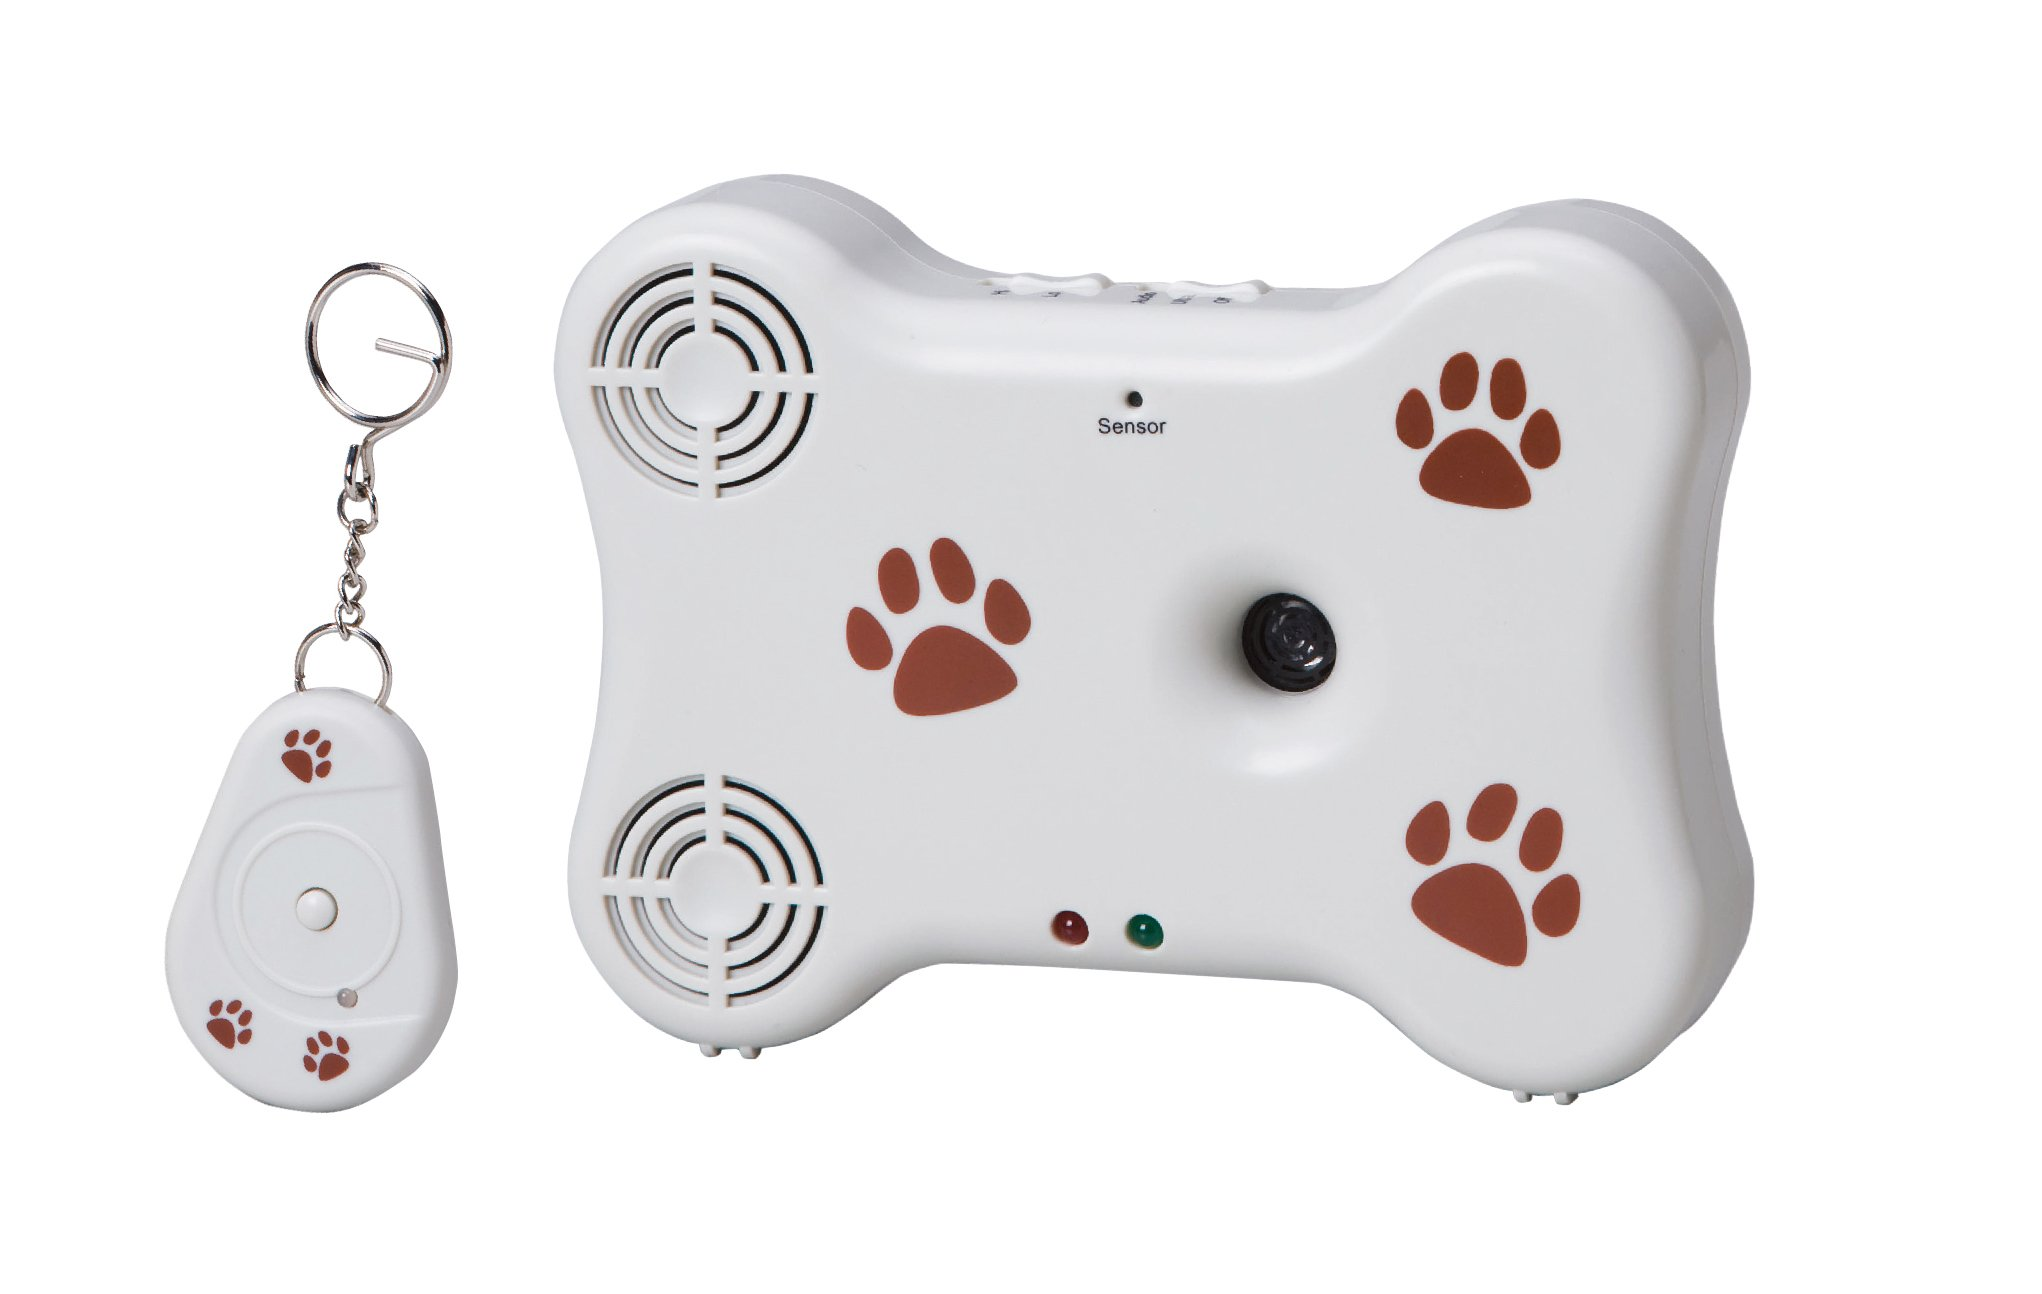 NewRam Ultrasonic Dog Barking Control: Stop your Neighbour's Dogs. Automatic Deterrent for Outdoor & Indoor. Long Range & Remote Control Safe Pet Behavior Training Device